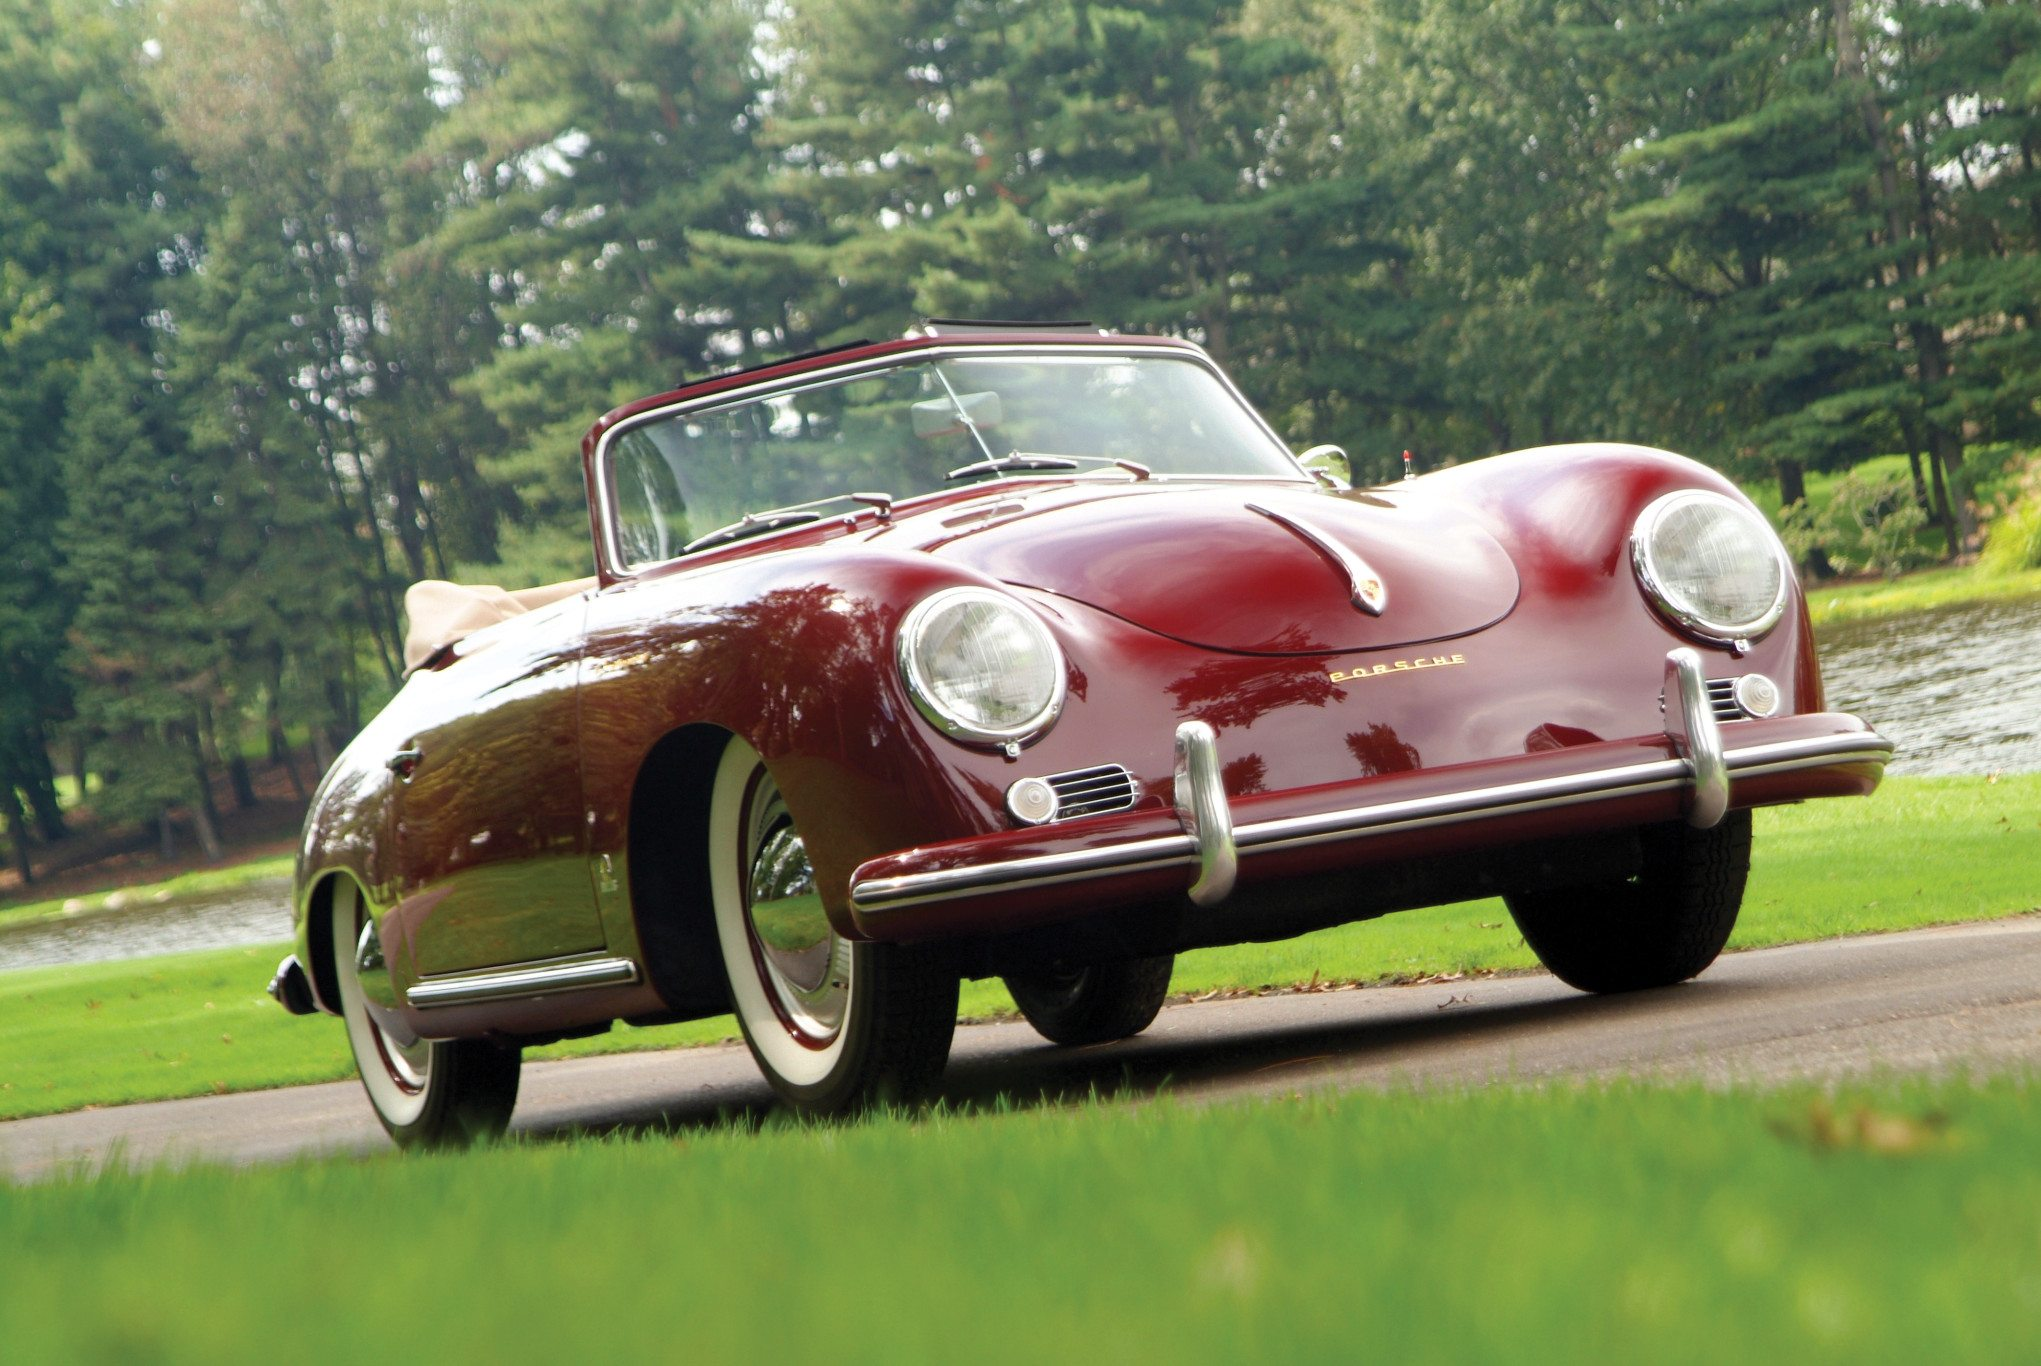 1955 Porsche 356 coupes and cabriolets wore Continental nameplates on the  front fenders. This was done at the request of importer Max Hoffman who  insisted ...